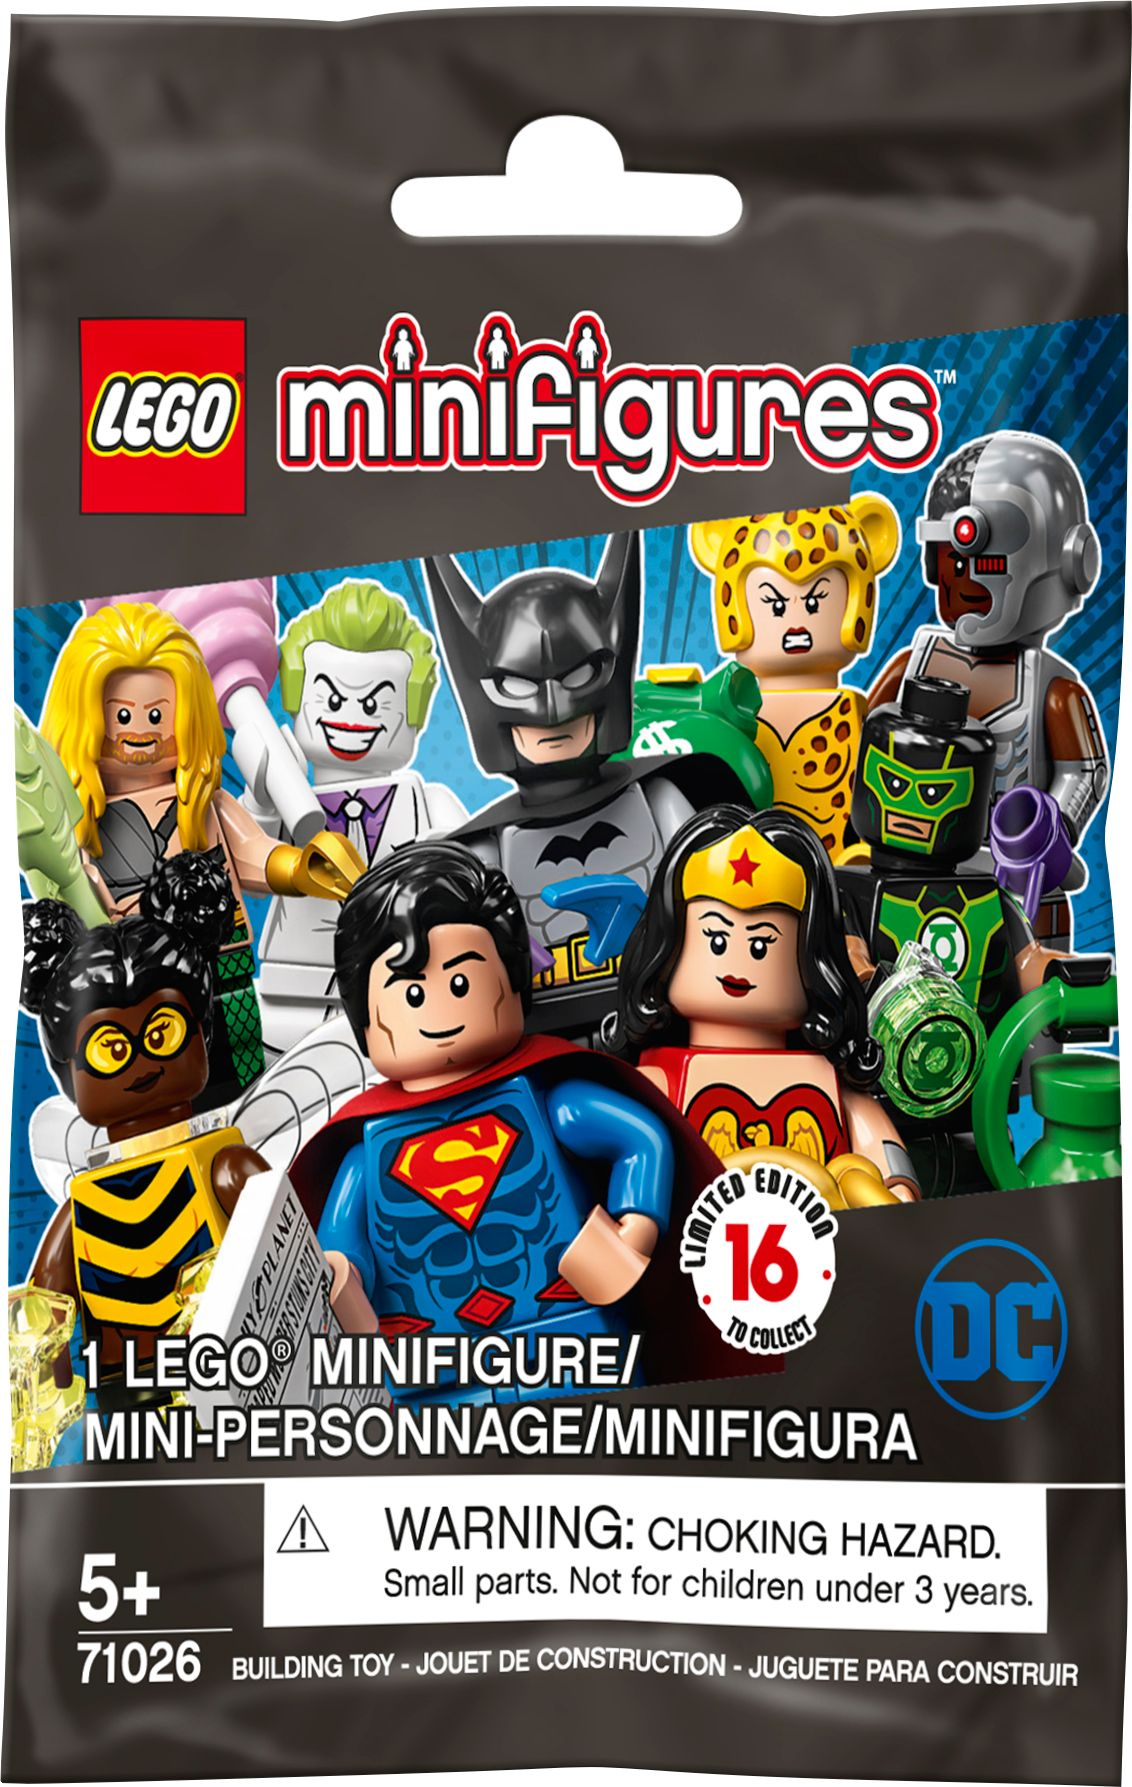 LEGO Collectable Minifigures 71026 LEGO® DC Super Heroes Series - 2 x 30er Box LEGO_71026_alt1.jpg